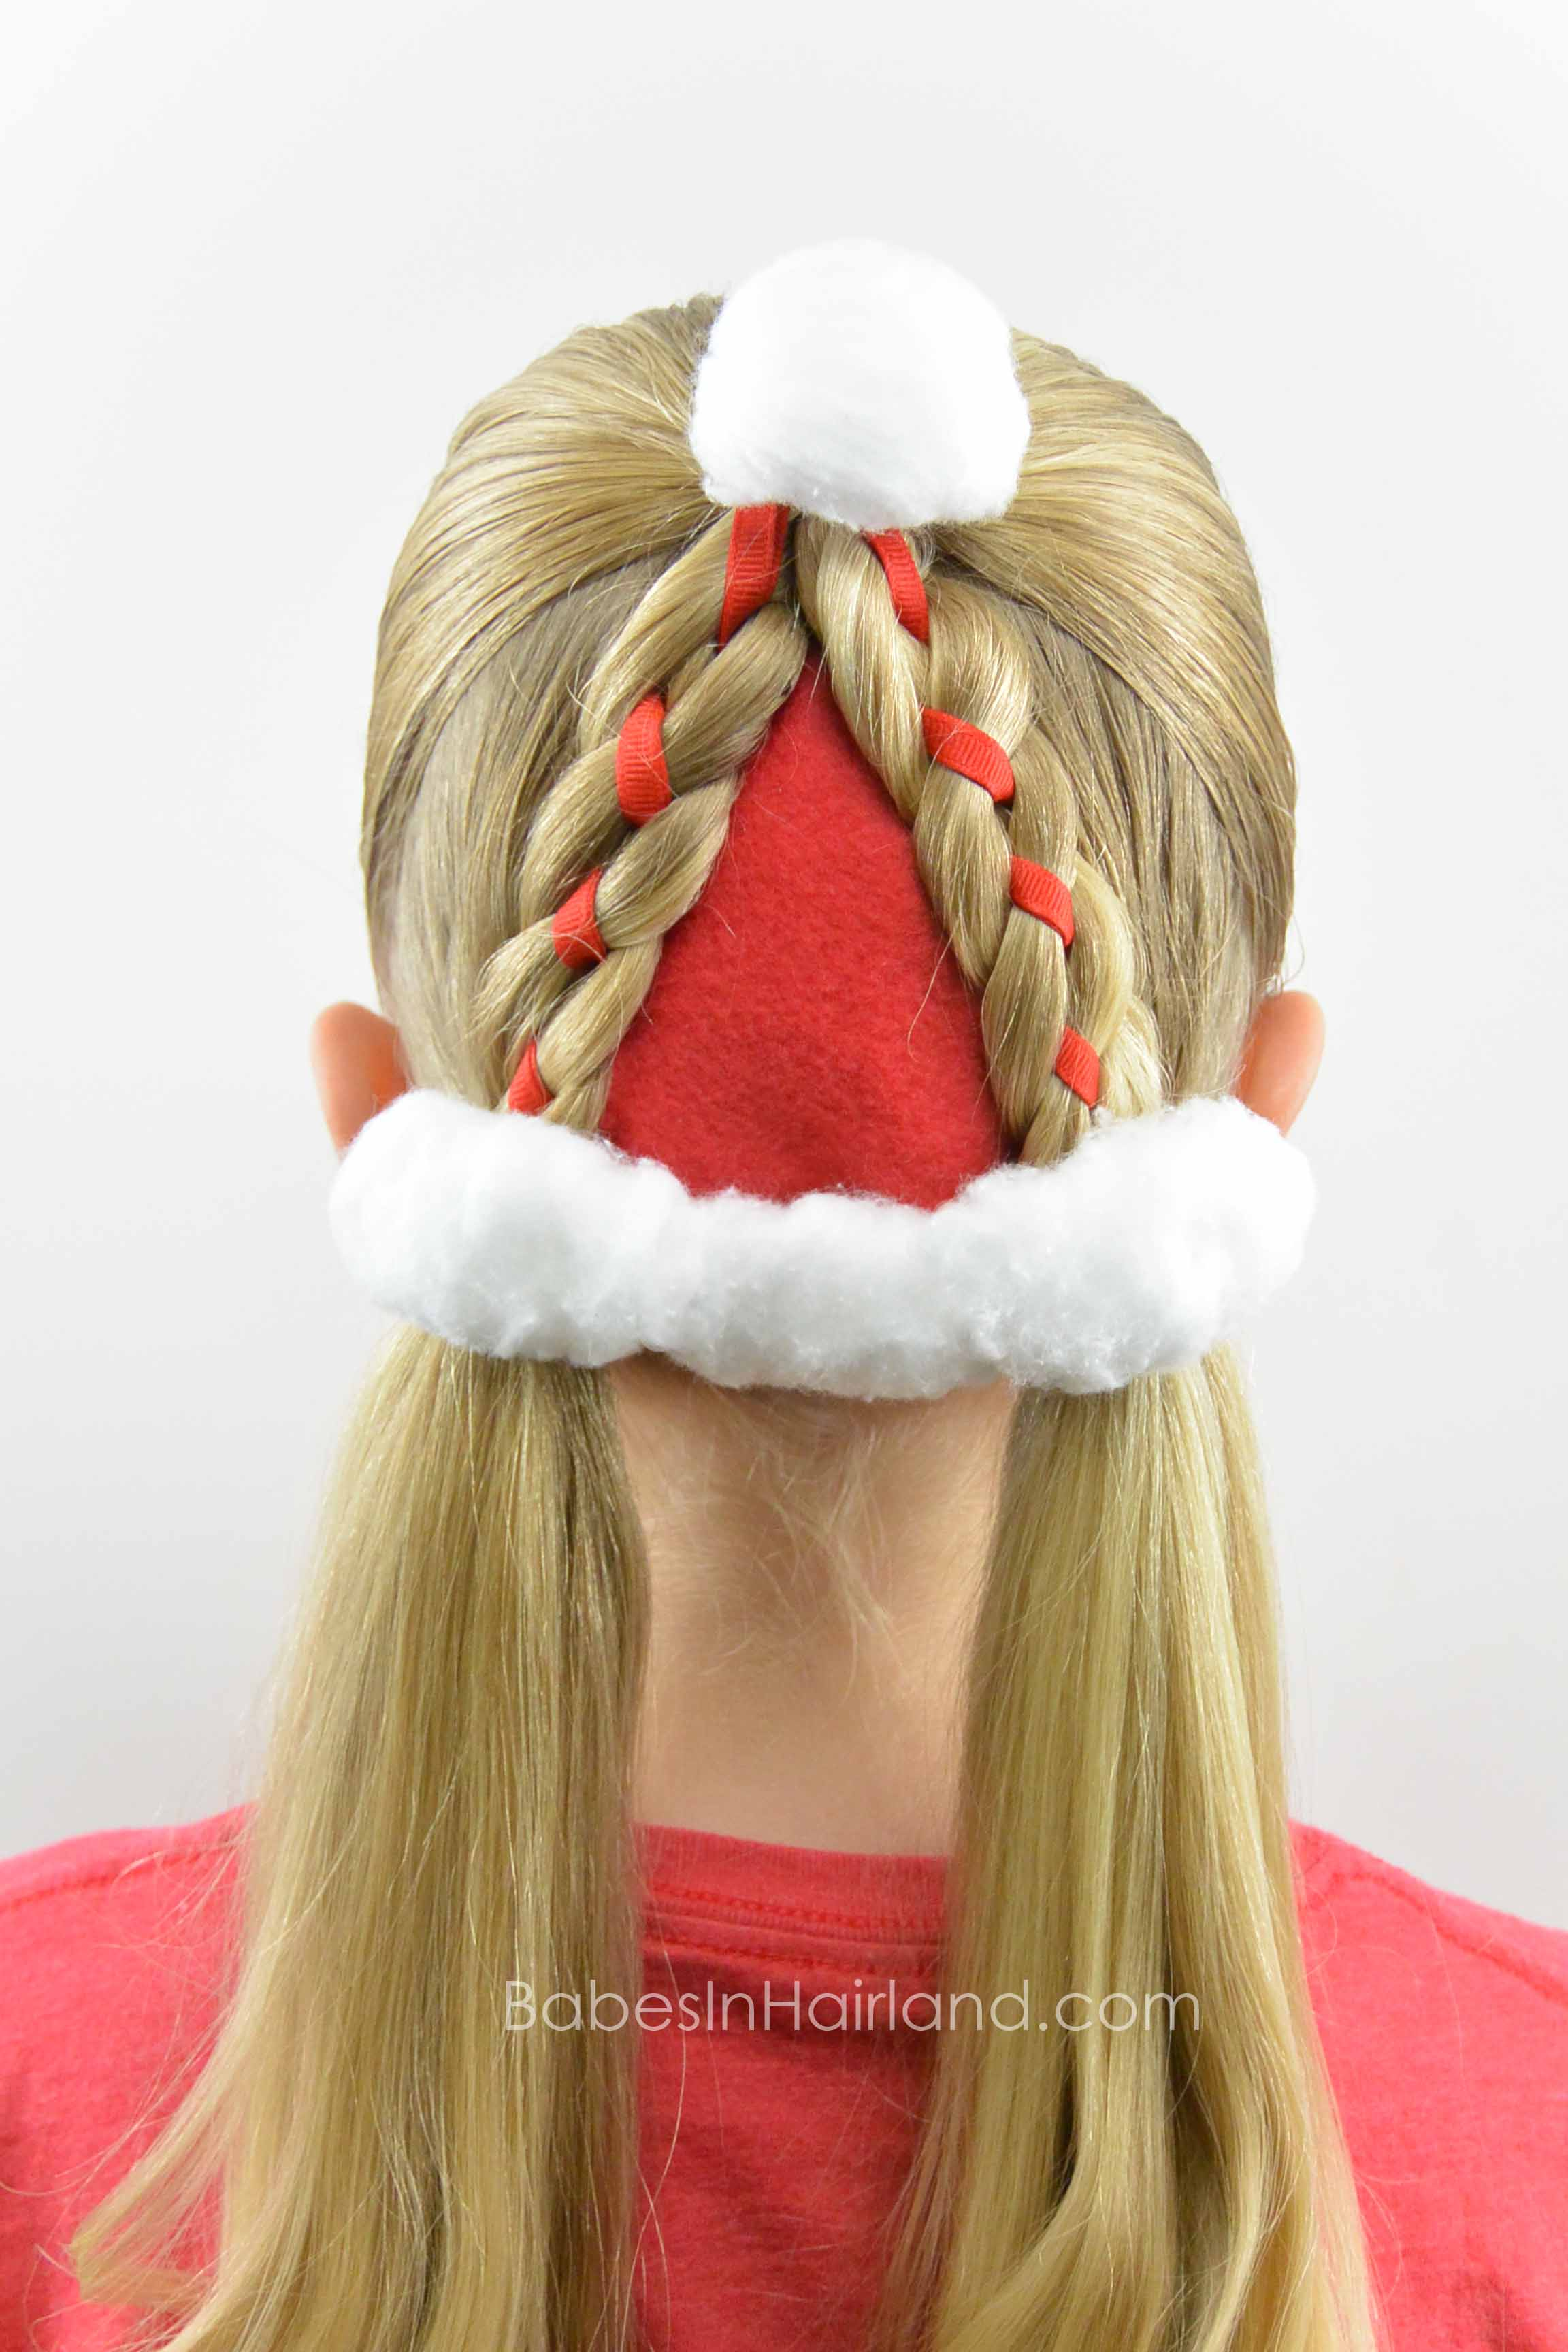 style ideas for hair santa hat hairstyle hairstyle in hairland 6095